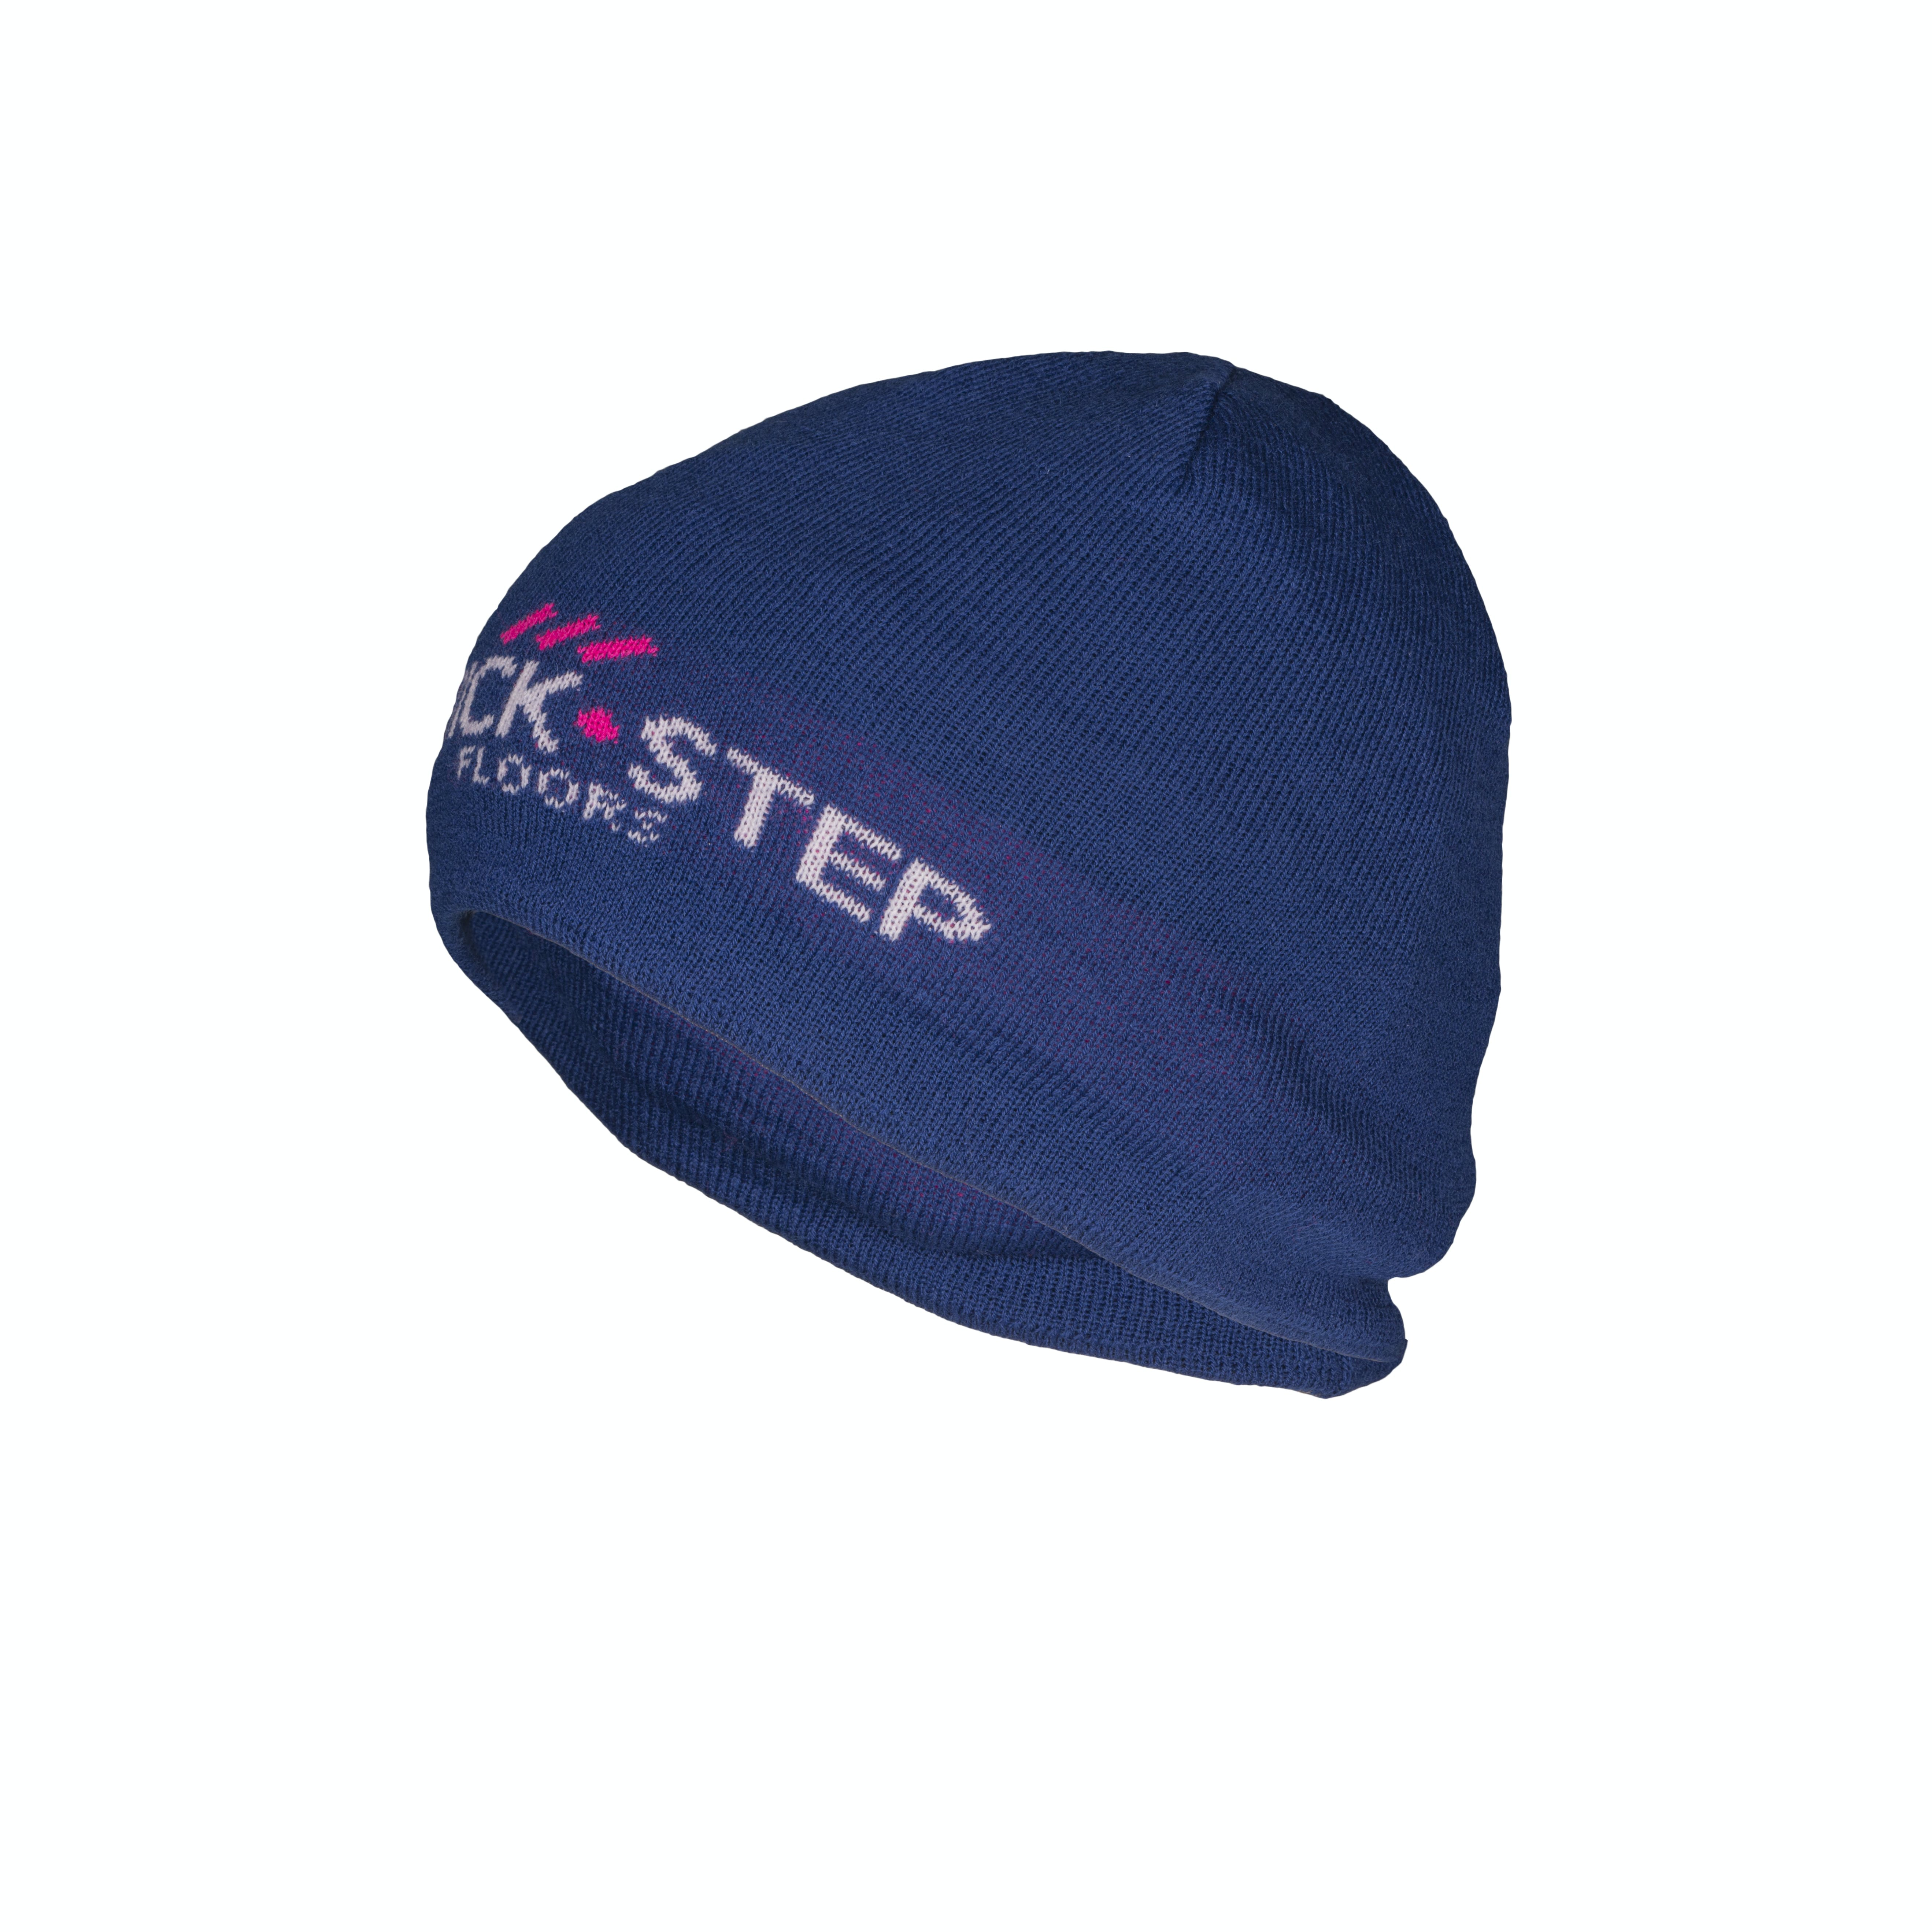 Quick-Step Floors 2018 Beanie Climawell